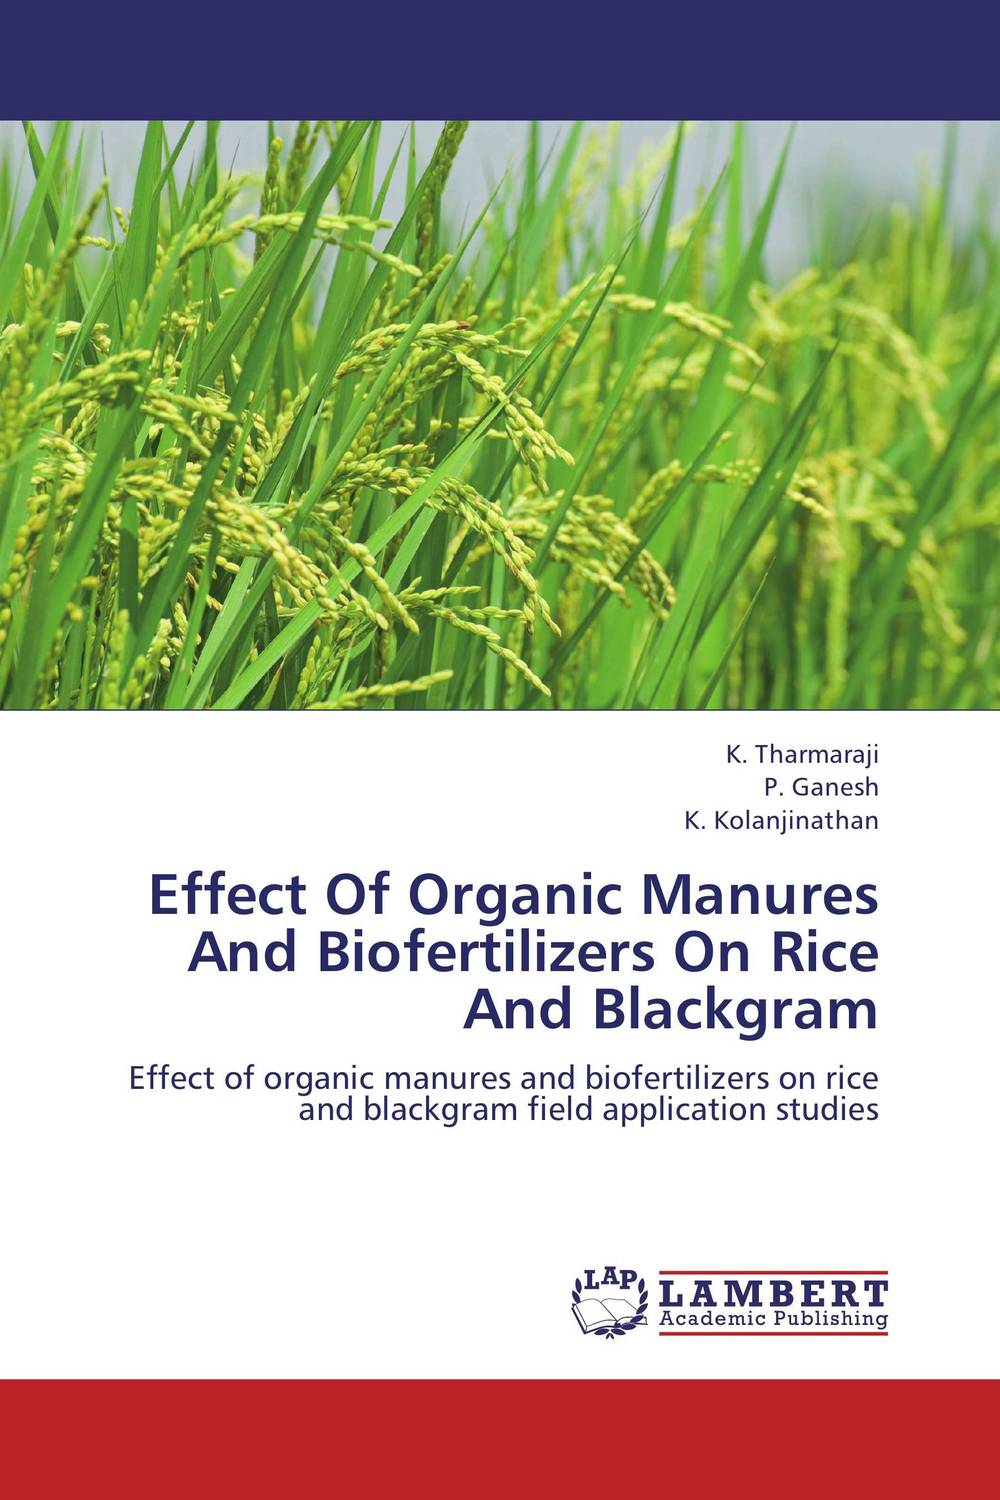 Effect Of Organic Manures And Biofertilizers On Rice And Blackgram brijesh yadav and rakesh kumar soil zinc fractions and nutritional composition of seeded rice